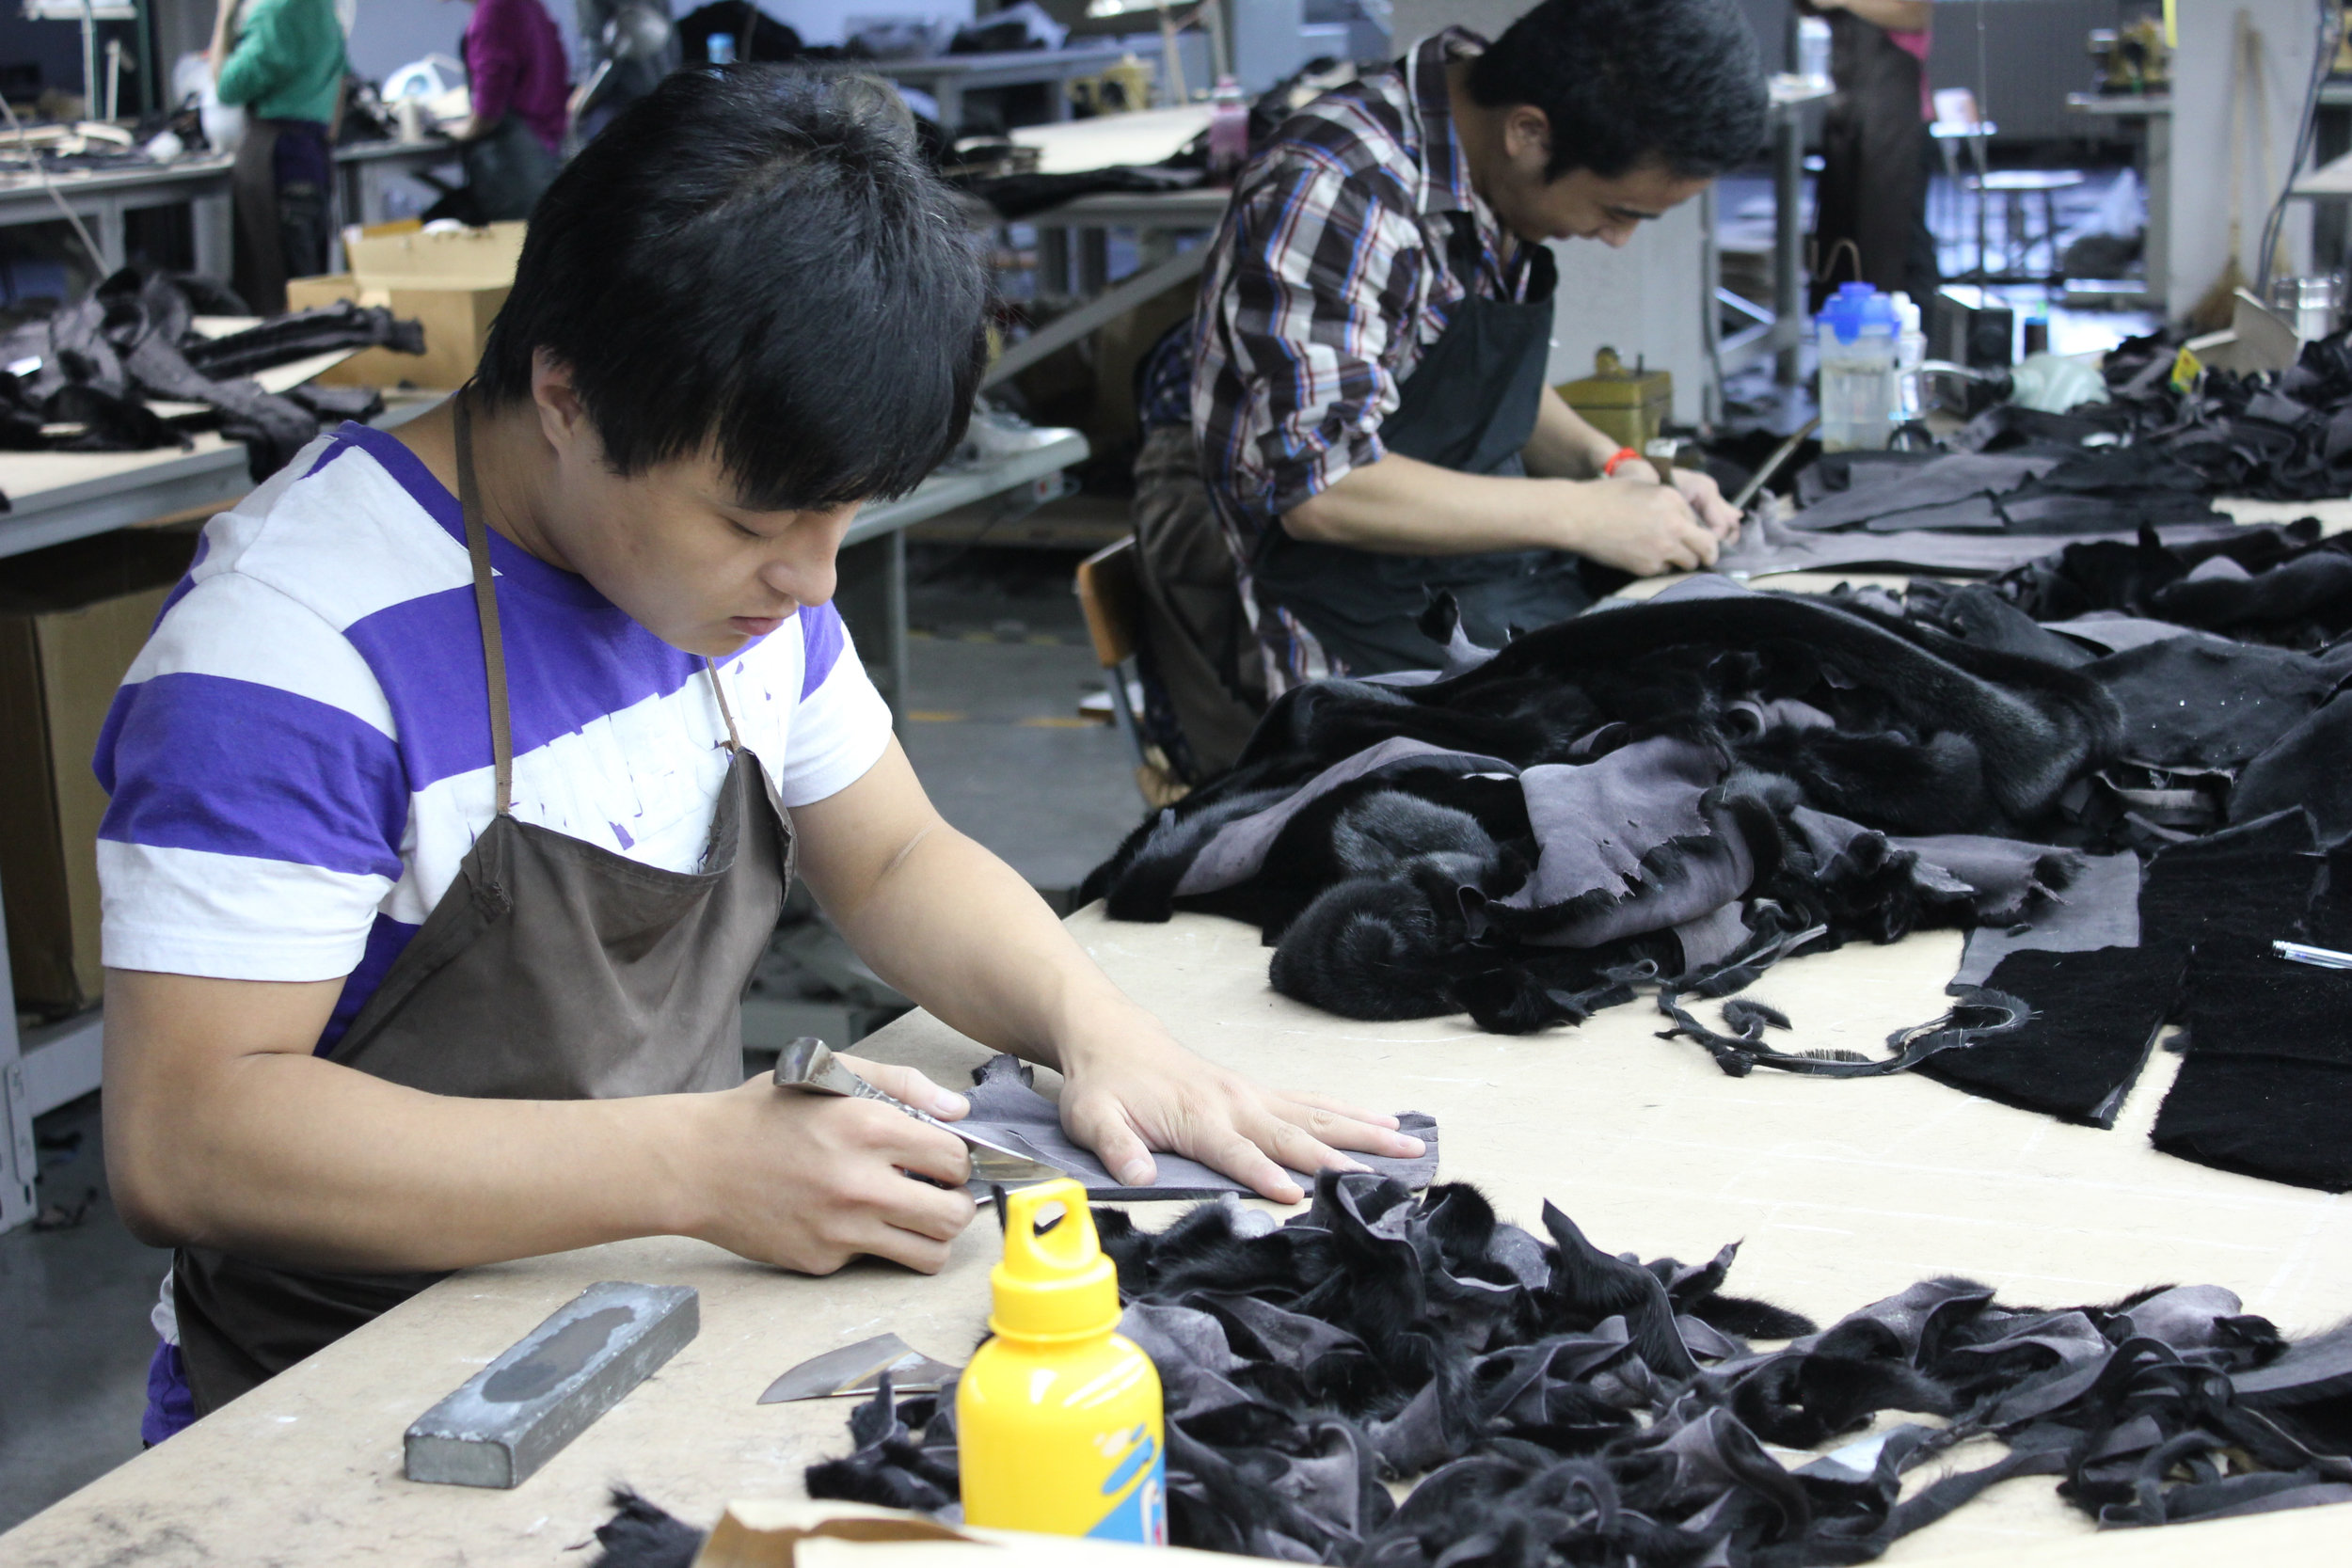 Garment cutters at work.